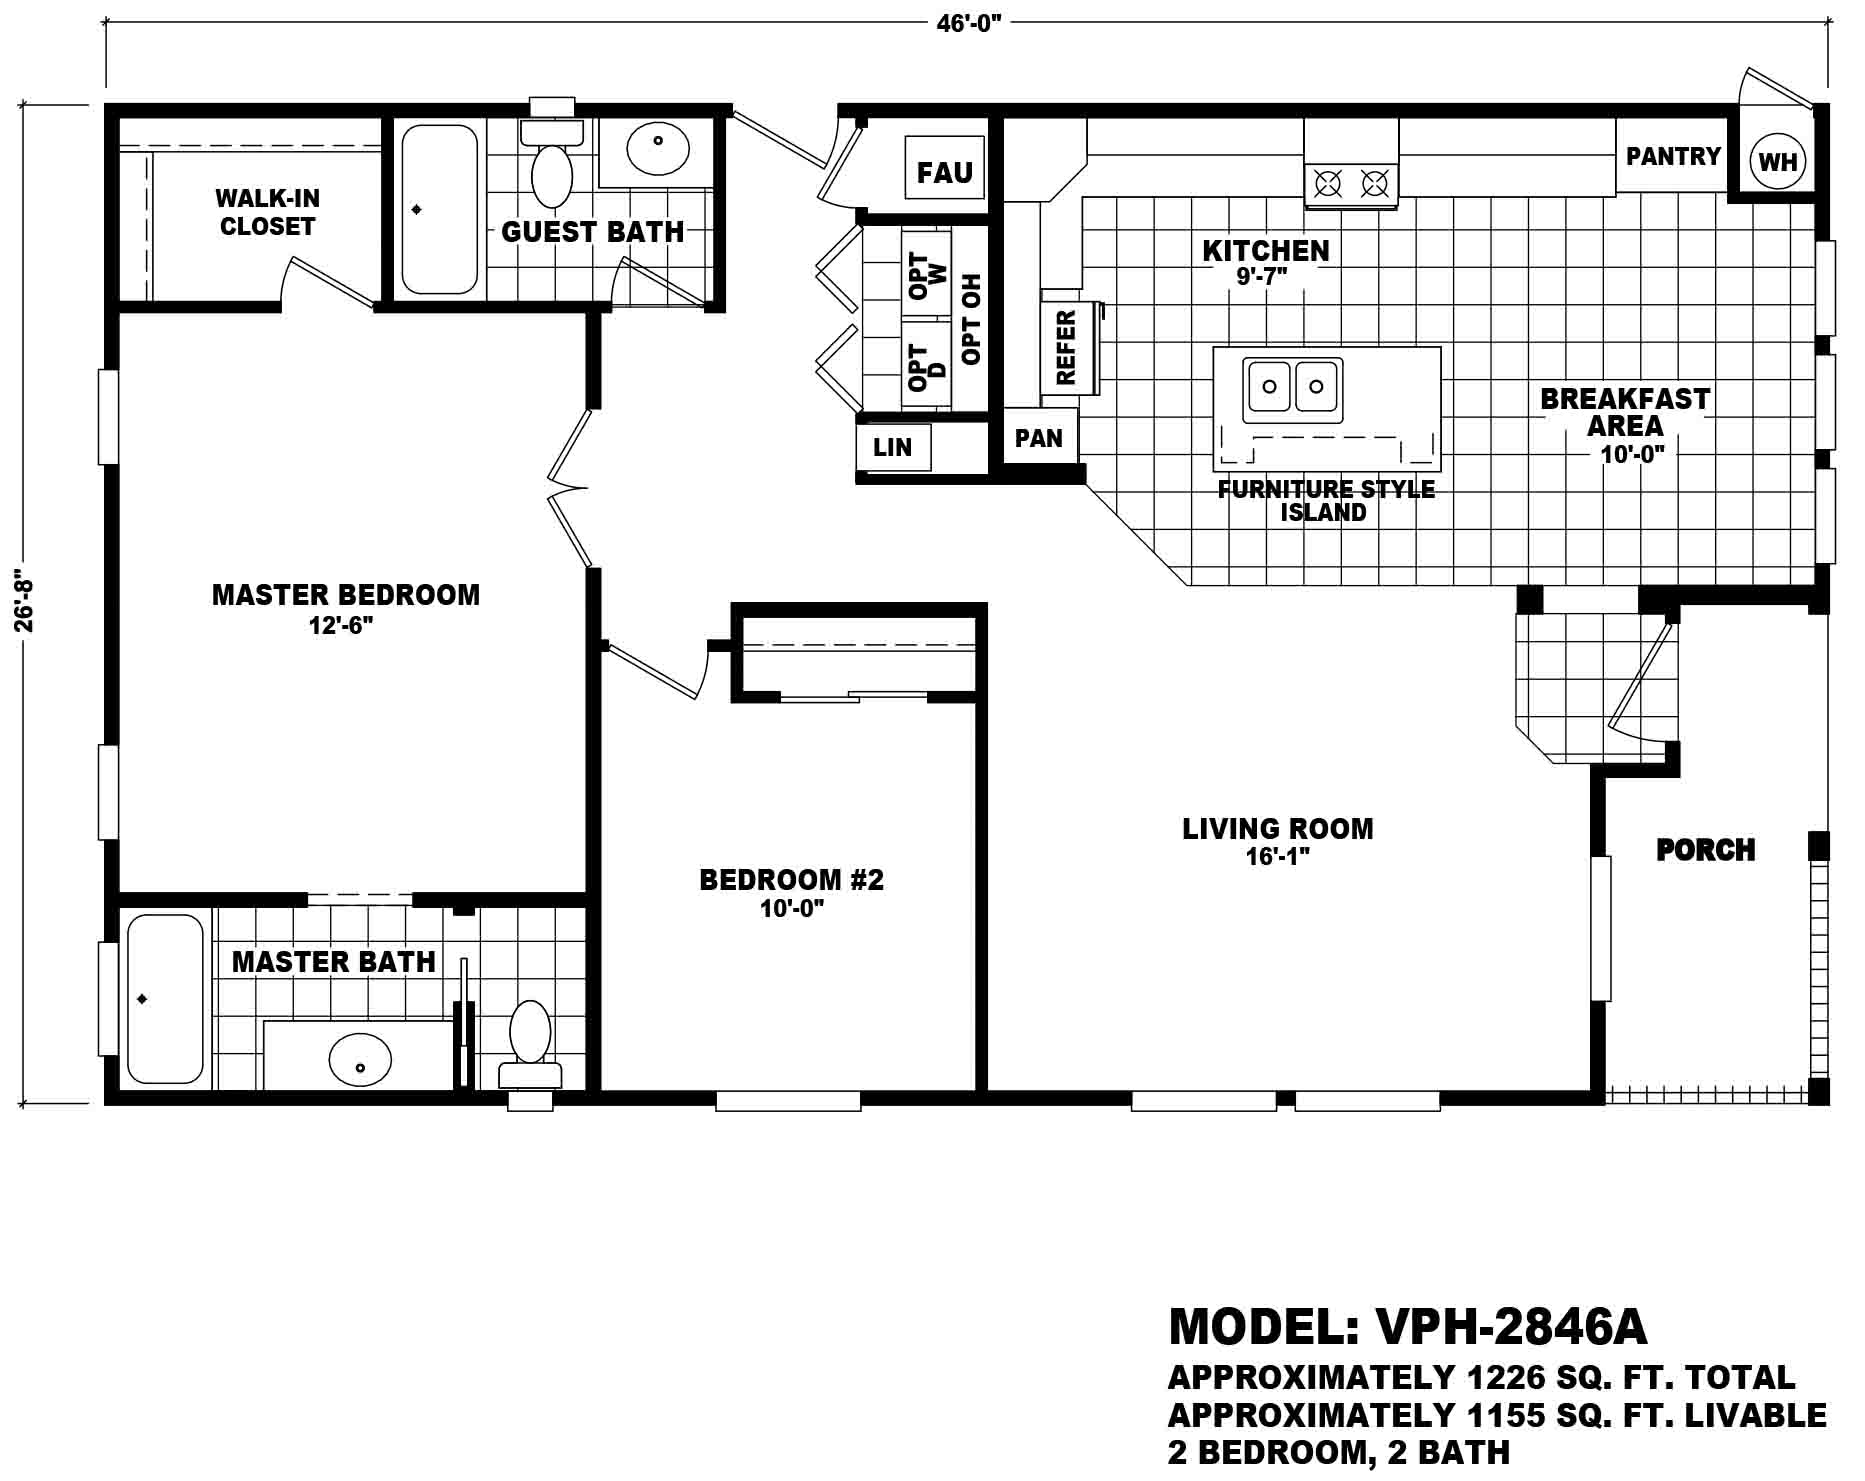 VPH 2846A Floor Plan.jpg